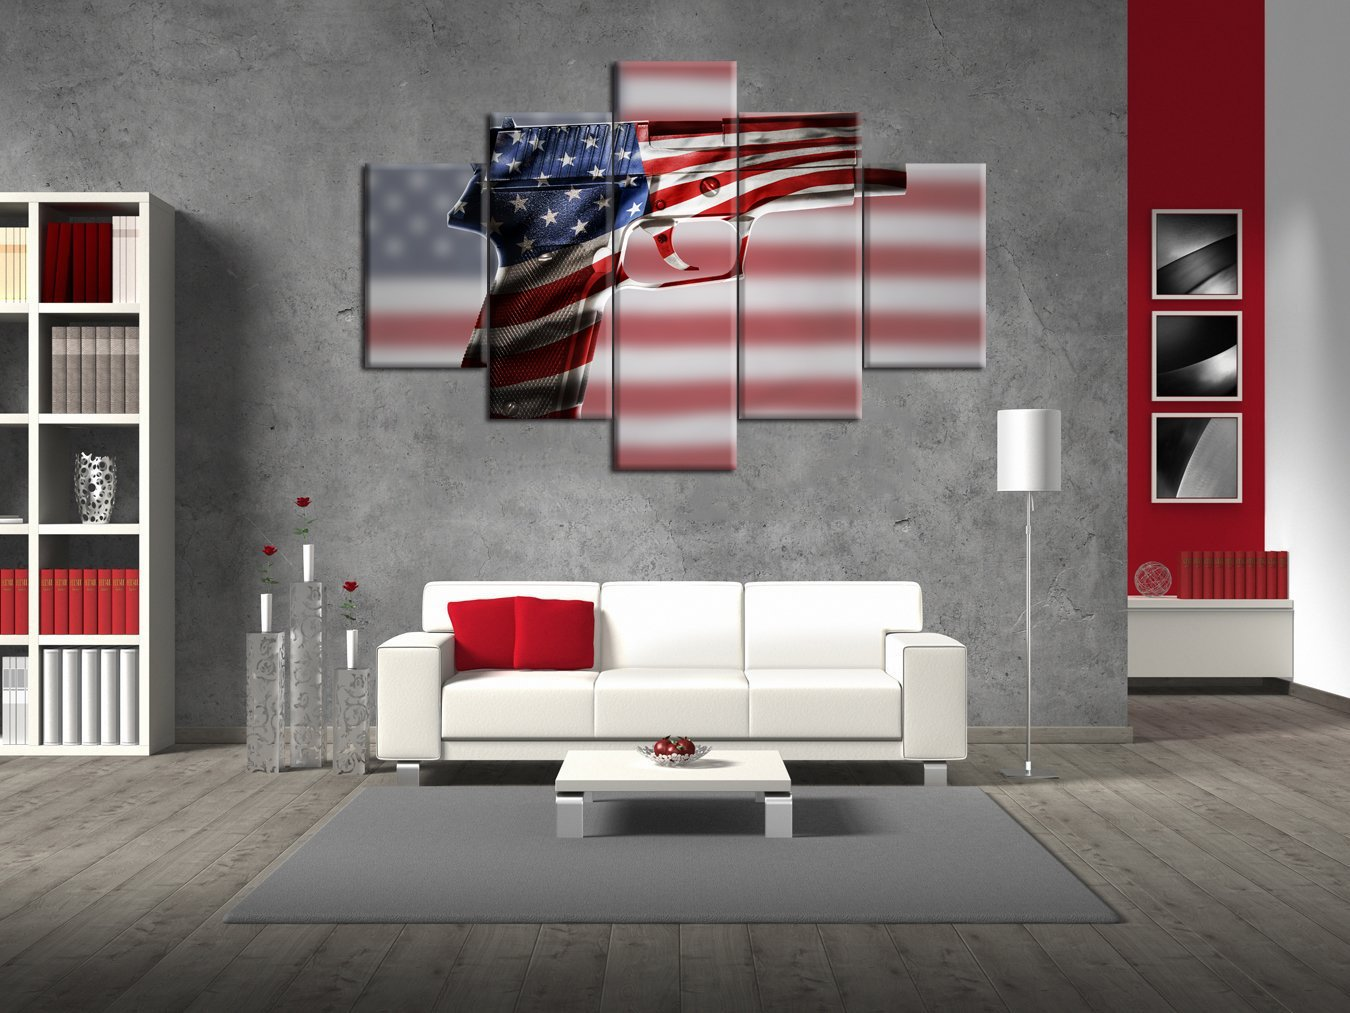 Retro Painting on Canvas Gun Closeup American Flag Wall Art Patriotic Concept USA Independence Day 5 Panel Vintage Artwork Print Giclee for Living Room Home Decoration Stretched Framed(60''W x 40''H) by Yatsen Bridge